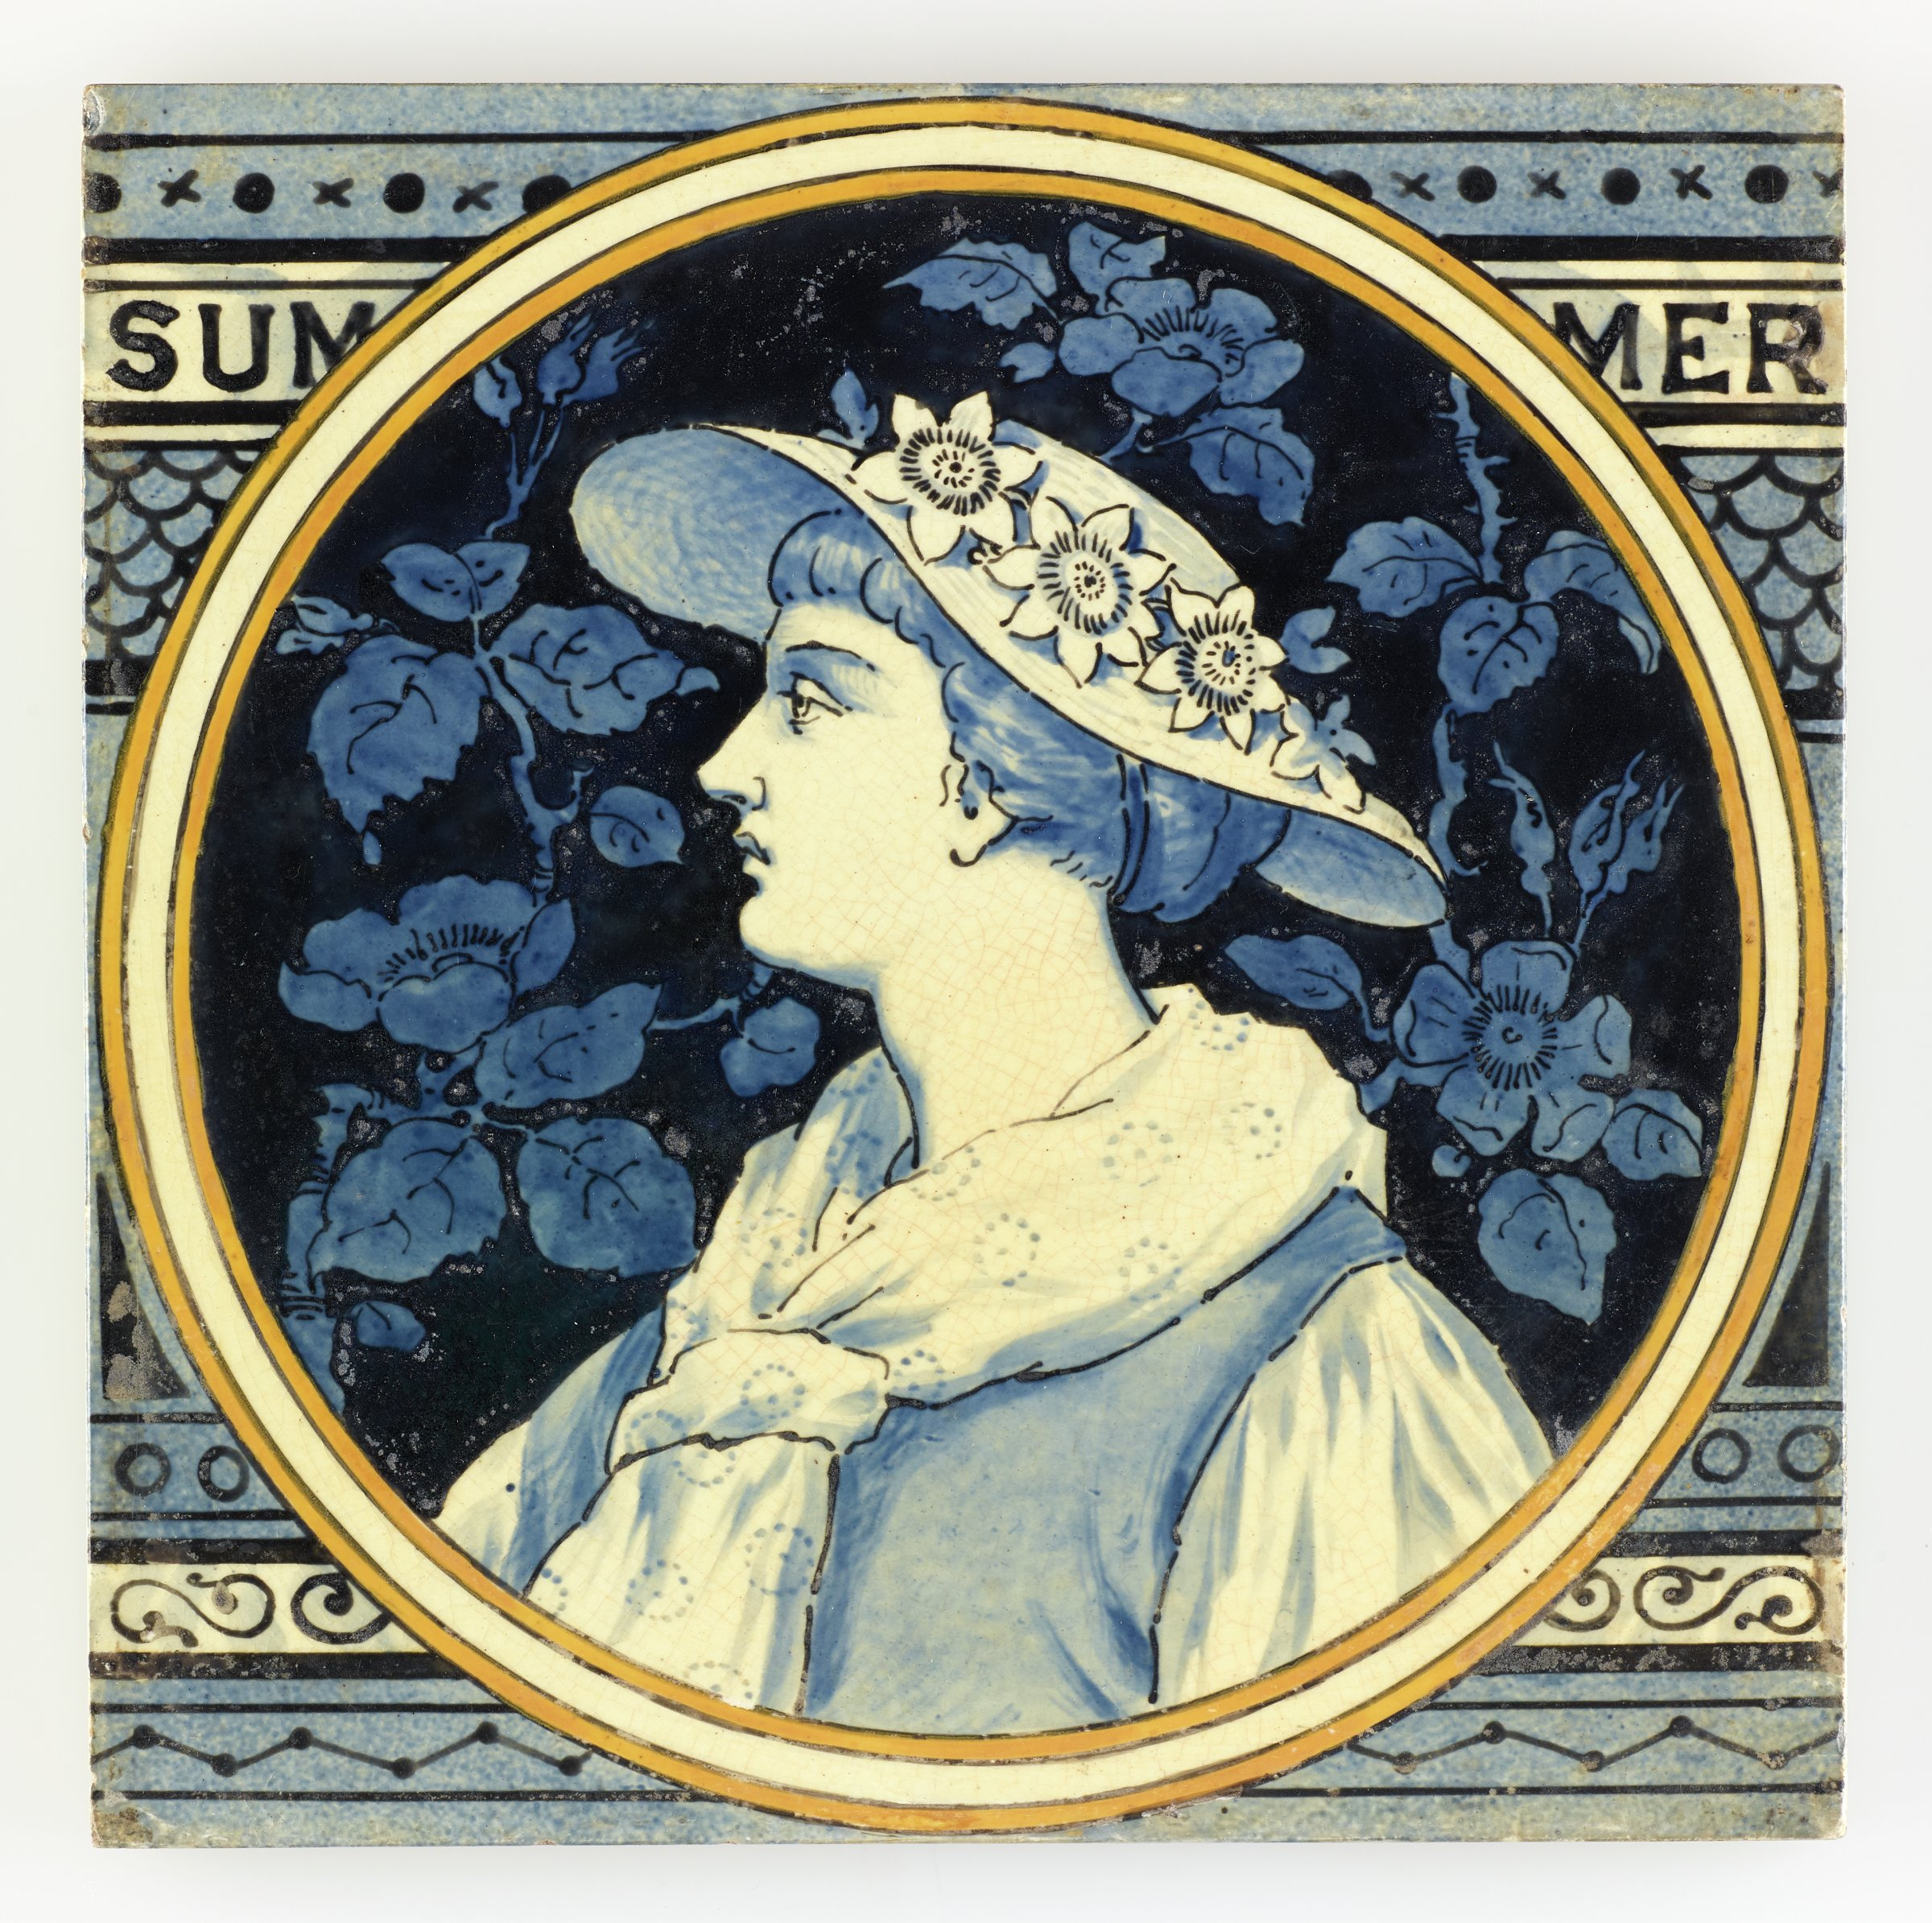 Large, square earthenware tile partially printed and hand-painted with a circular reserve outlined by a white band within two yellow bands containing in white with blue highlights the portrait of a young woman to left wearing a summer blouse and vest with a loose scarf and a straw cap with a band of flowers, the ground with a blue on blue design of floral vines, the larger ground of the tile contains in various shades of blue a pattern of decorative, horizontal bands with from the top a band of small x's and solid dots; the name of the season SUM MER; a fish scale pattern; a band of open dots; a band of scrolling motifs; and a band featuring a zigzag design, the reverse with horizontal bars in relief to aid adhesion when setting the tile.